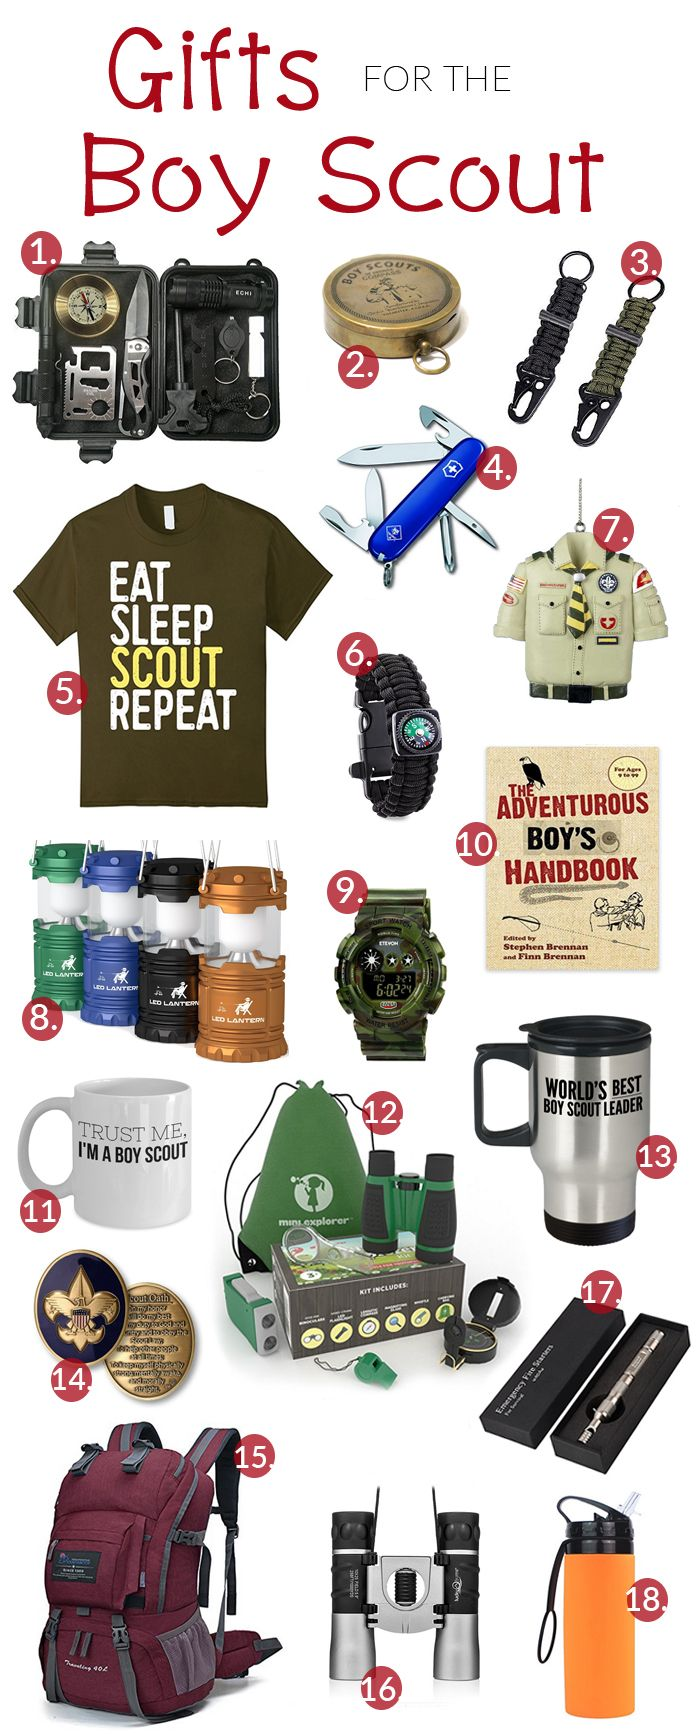 Great gift ideas for your Boy Scout, Scout leader, or anyone involved in scouts, young or old.